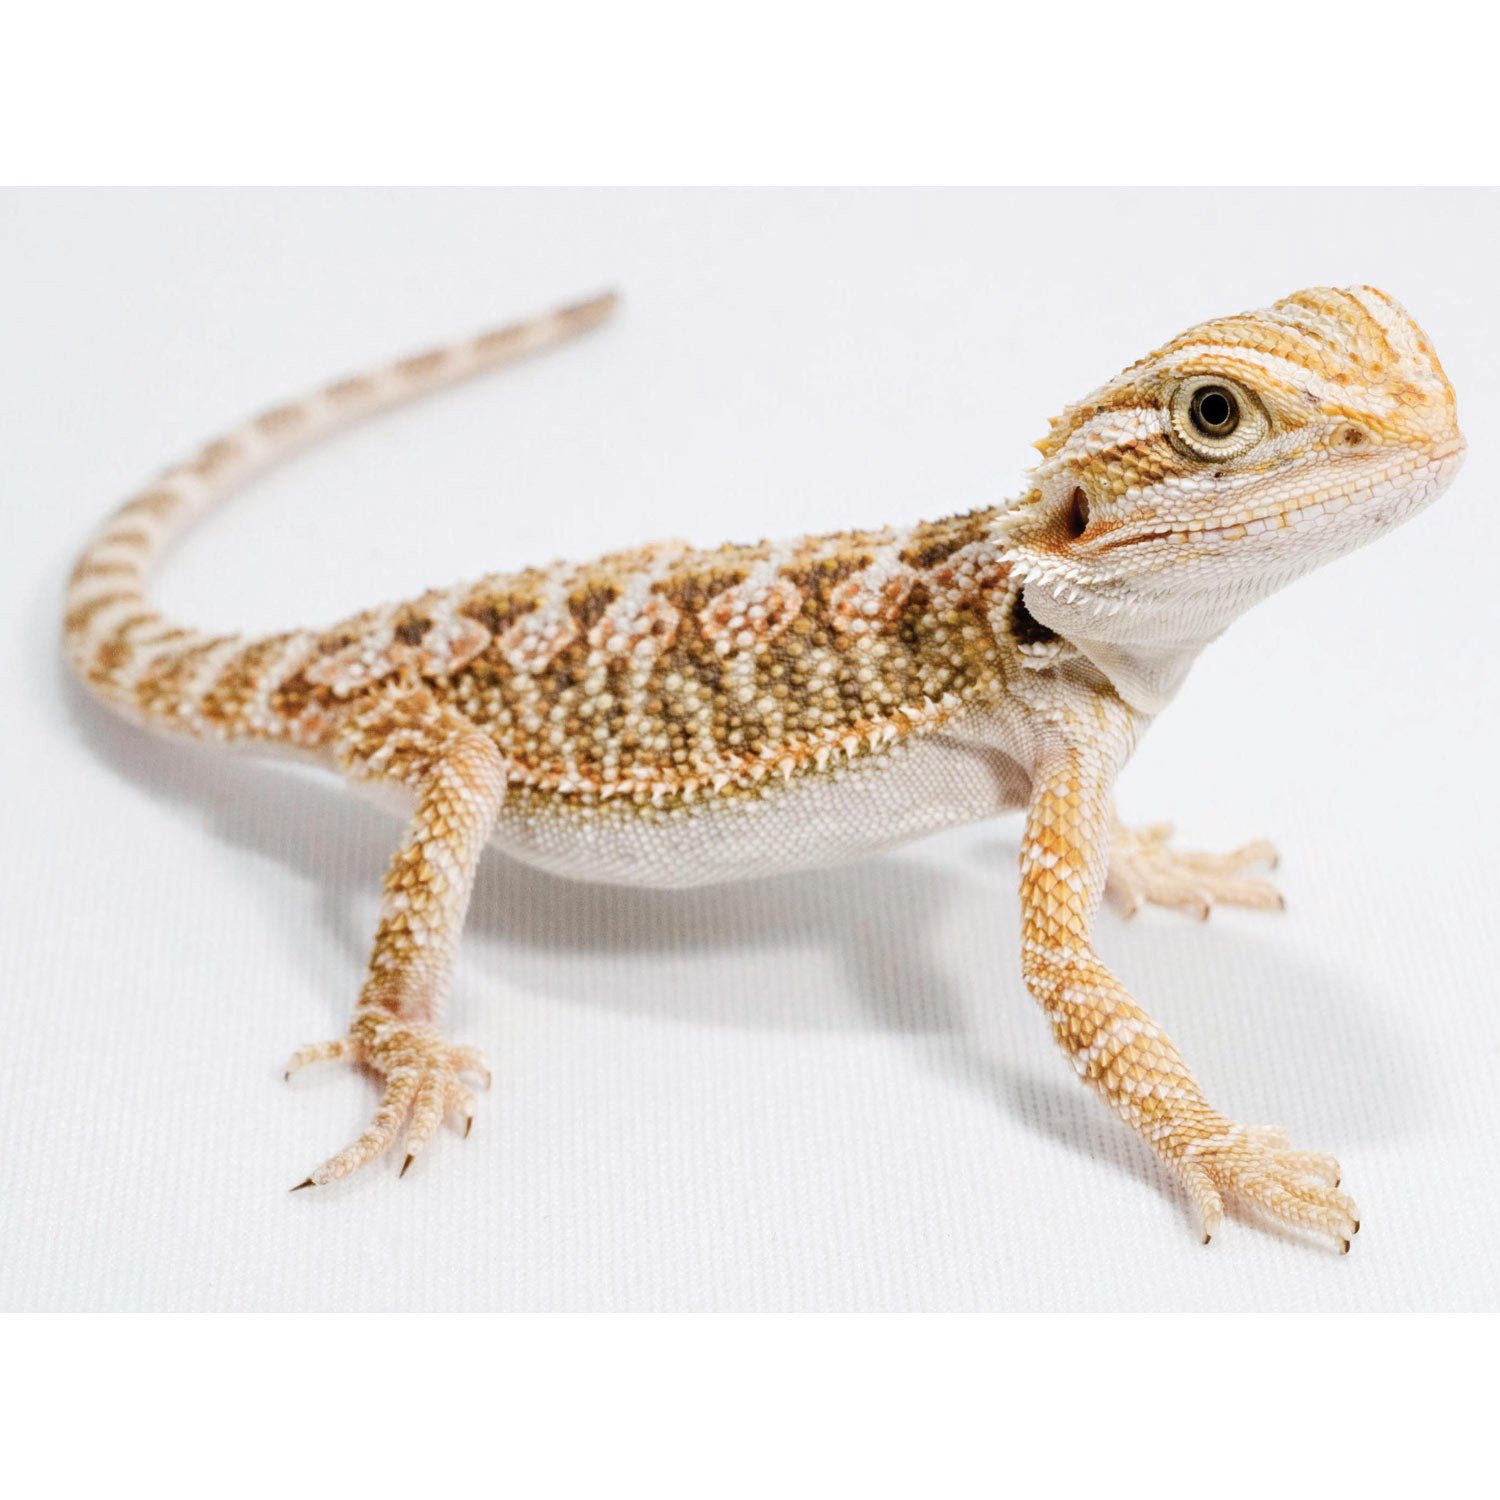 Buy Live Bearded Dragons For